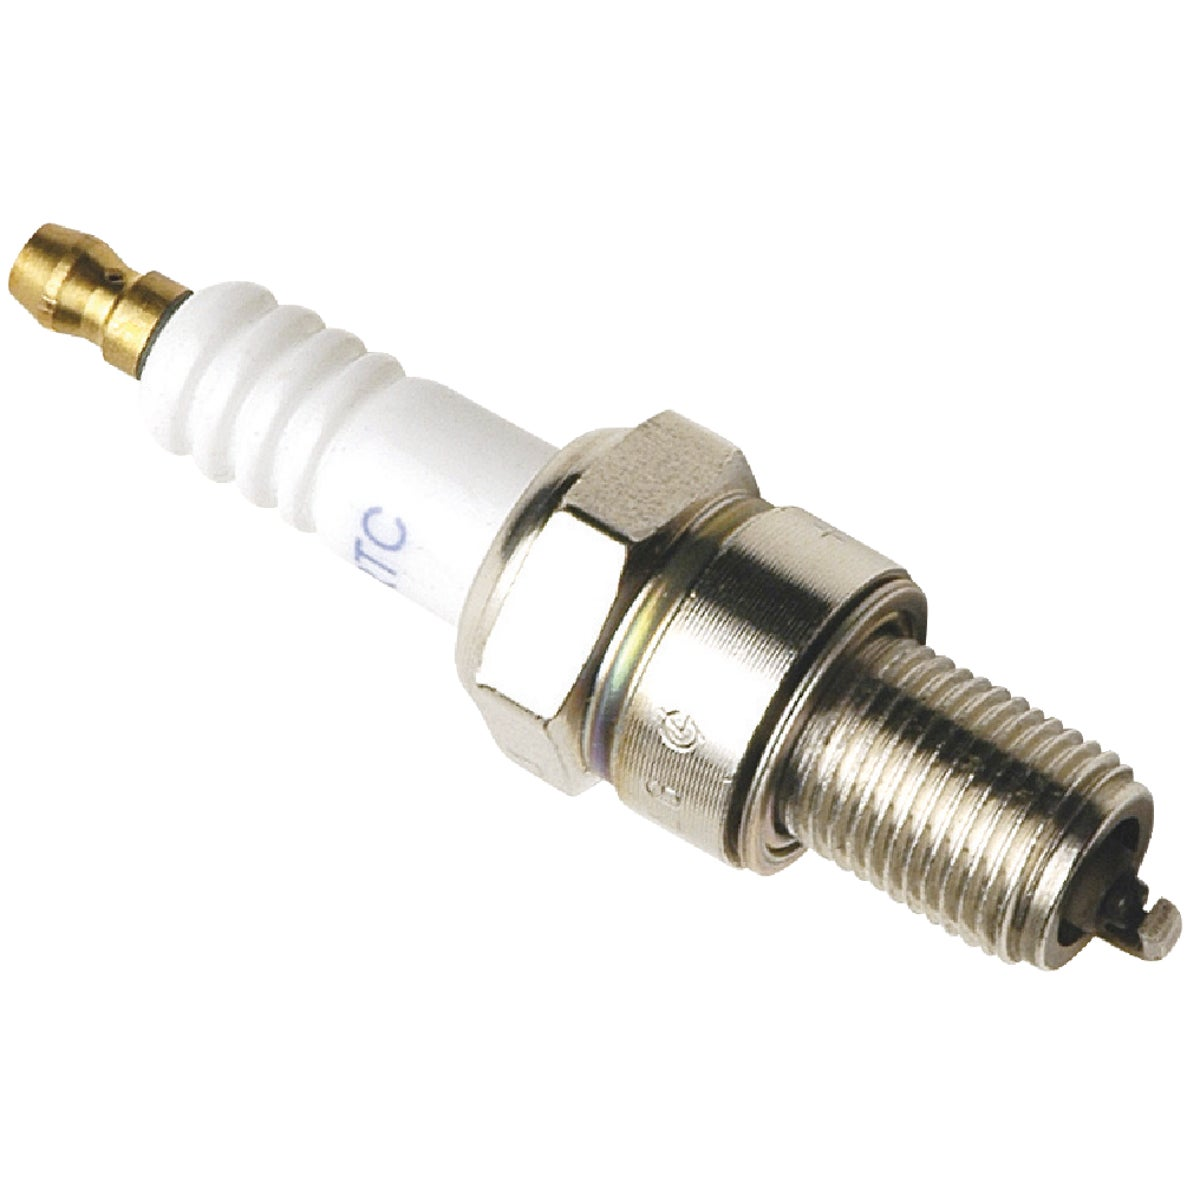 SPARK PLUG - OEM-751-10292 by Arnold Corp